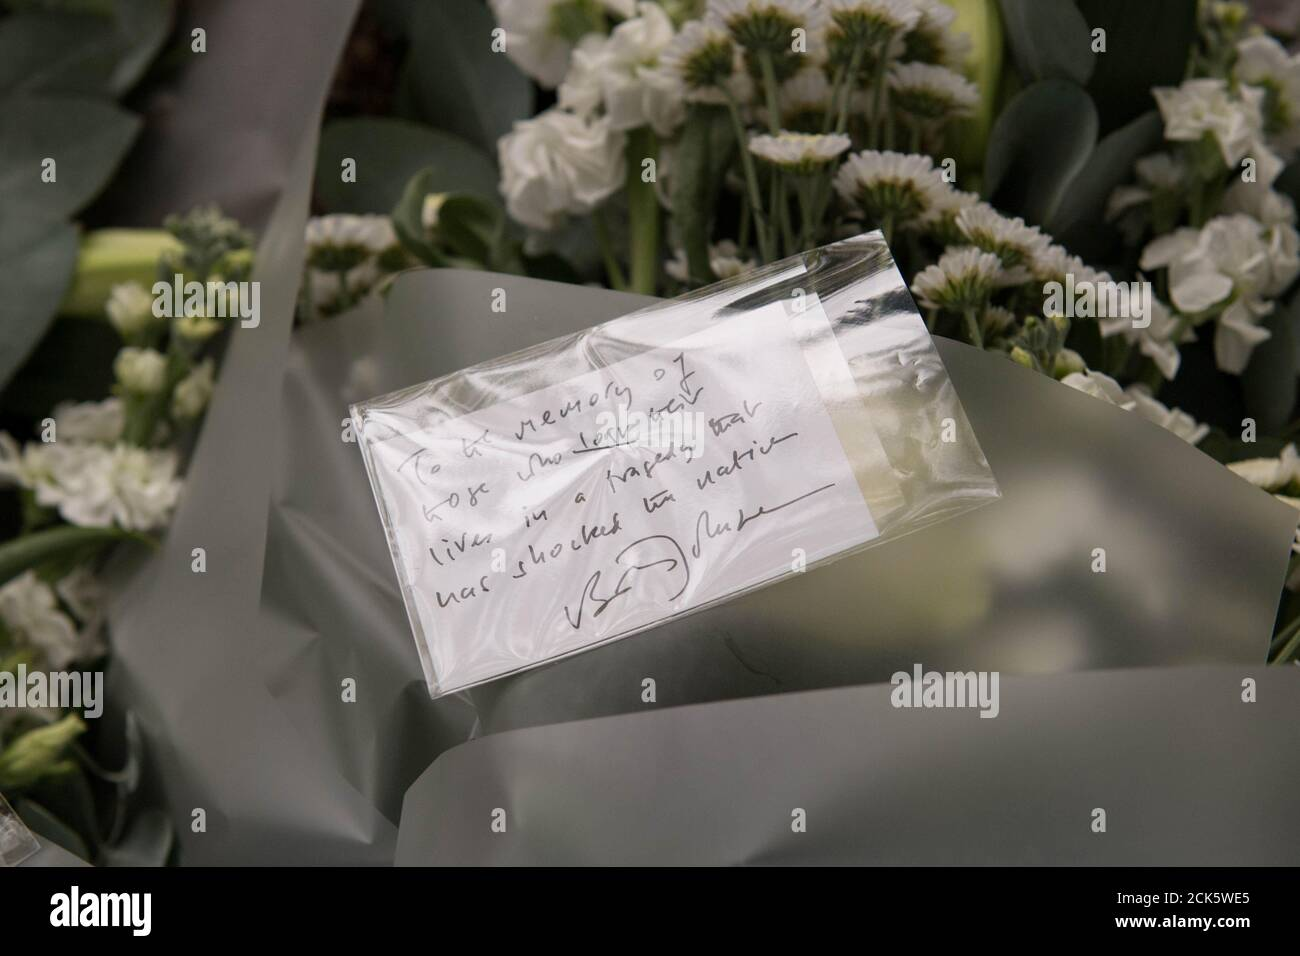 A note on flowers left by Prime Minister Boris Johnson during a visit to Thurrock Council Offices is seen in Grays, Britain, October 28, 2019. Stefan Rousseau/Pool via REUTERS Stock Photo